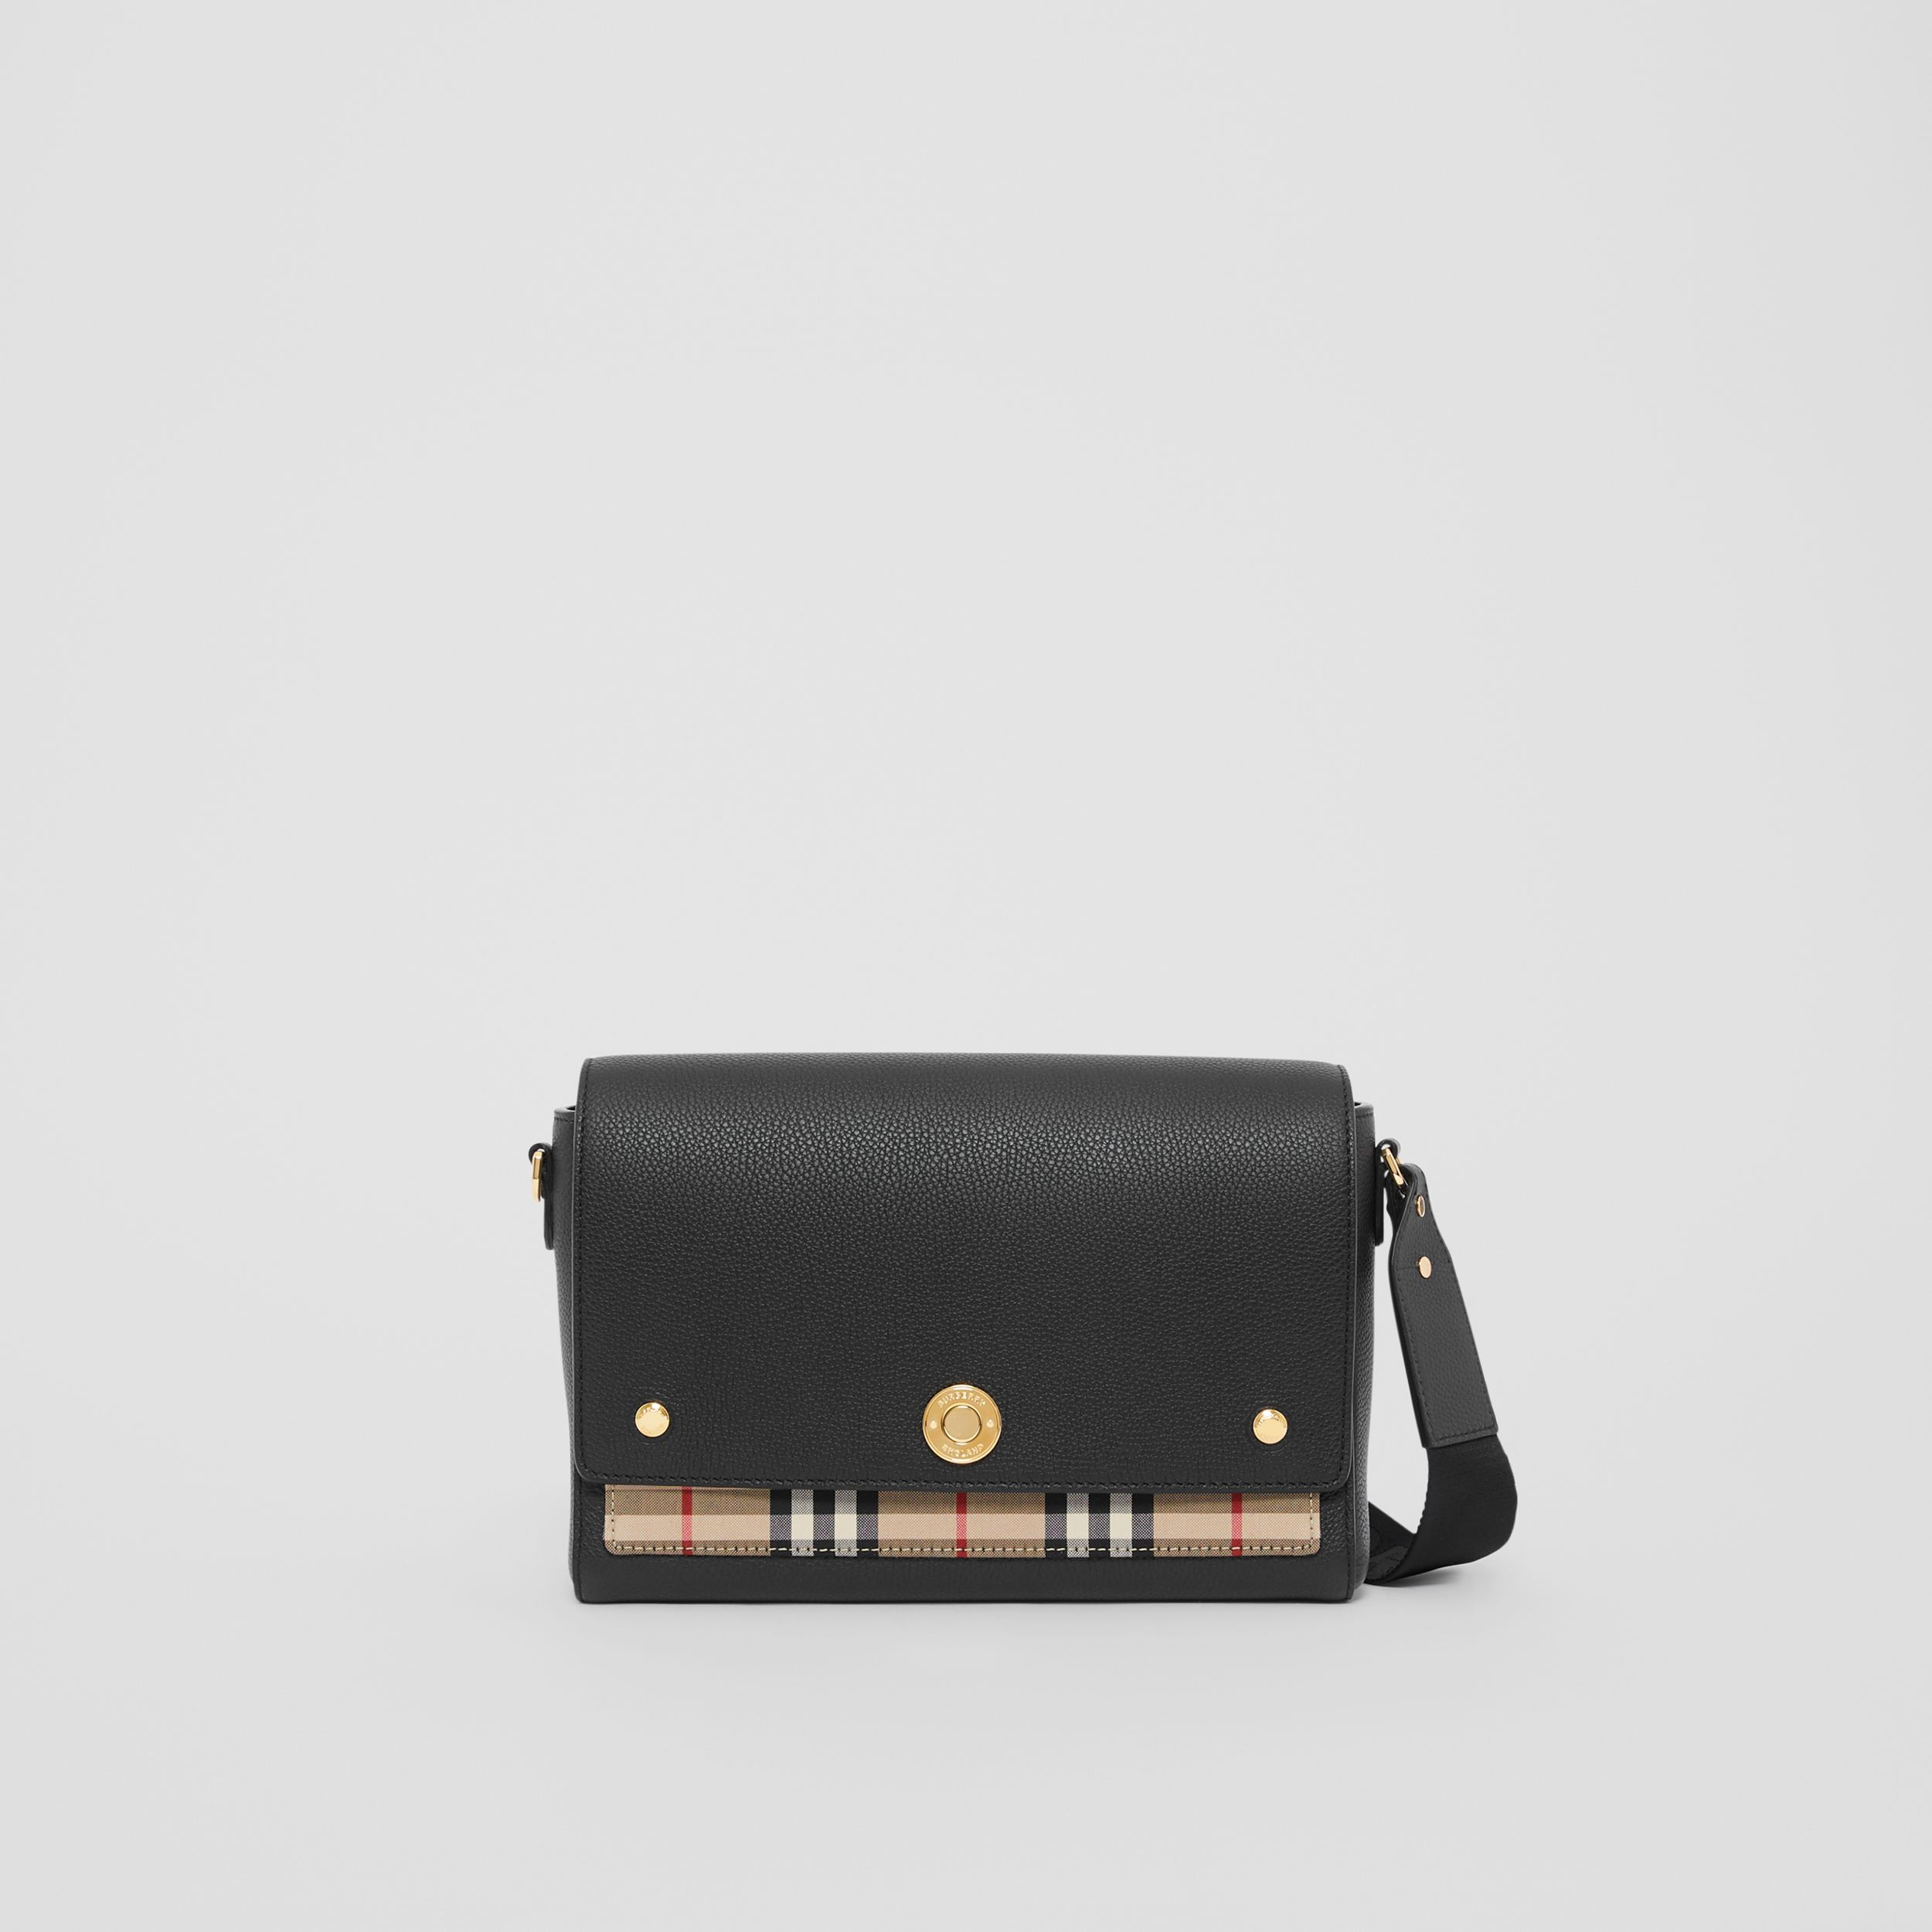 Leather and Vintage Check Note Crossbody Bag in Black - Women | Burberry Australia - 1